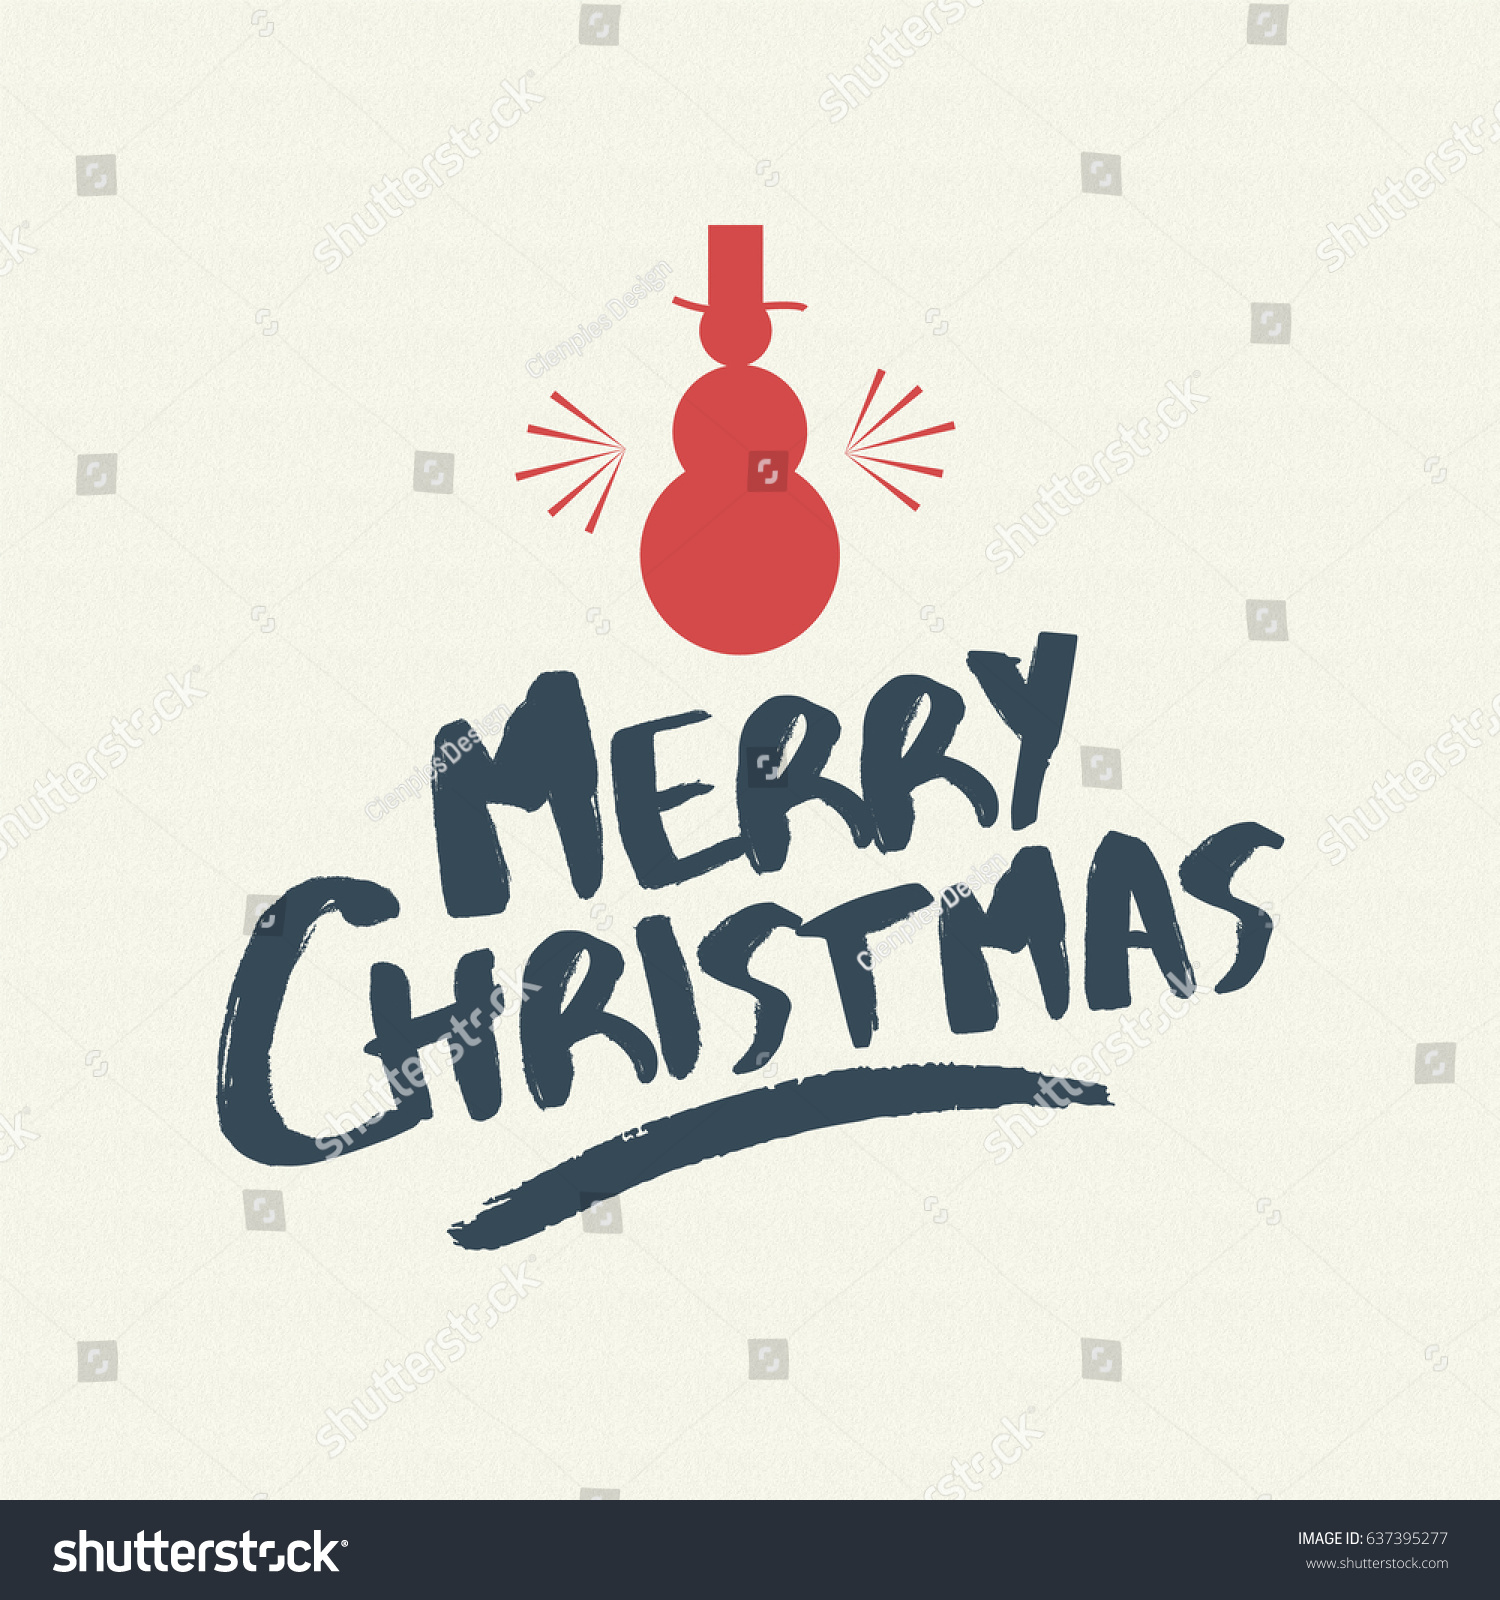 Merry Christmas Snowman Text Quote, Calligraphy Lettering Design For  Holiday Season. Creative Vintage Typography